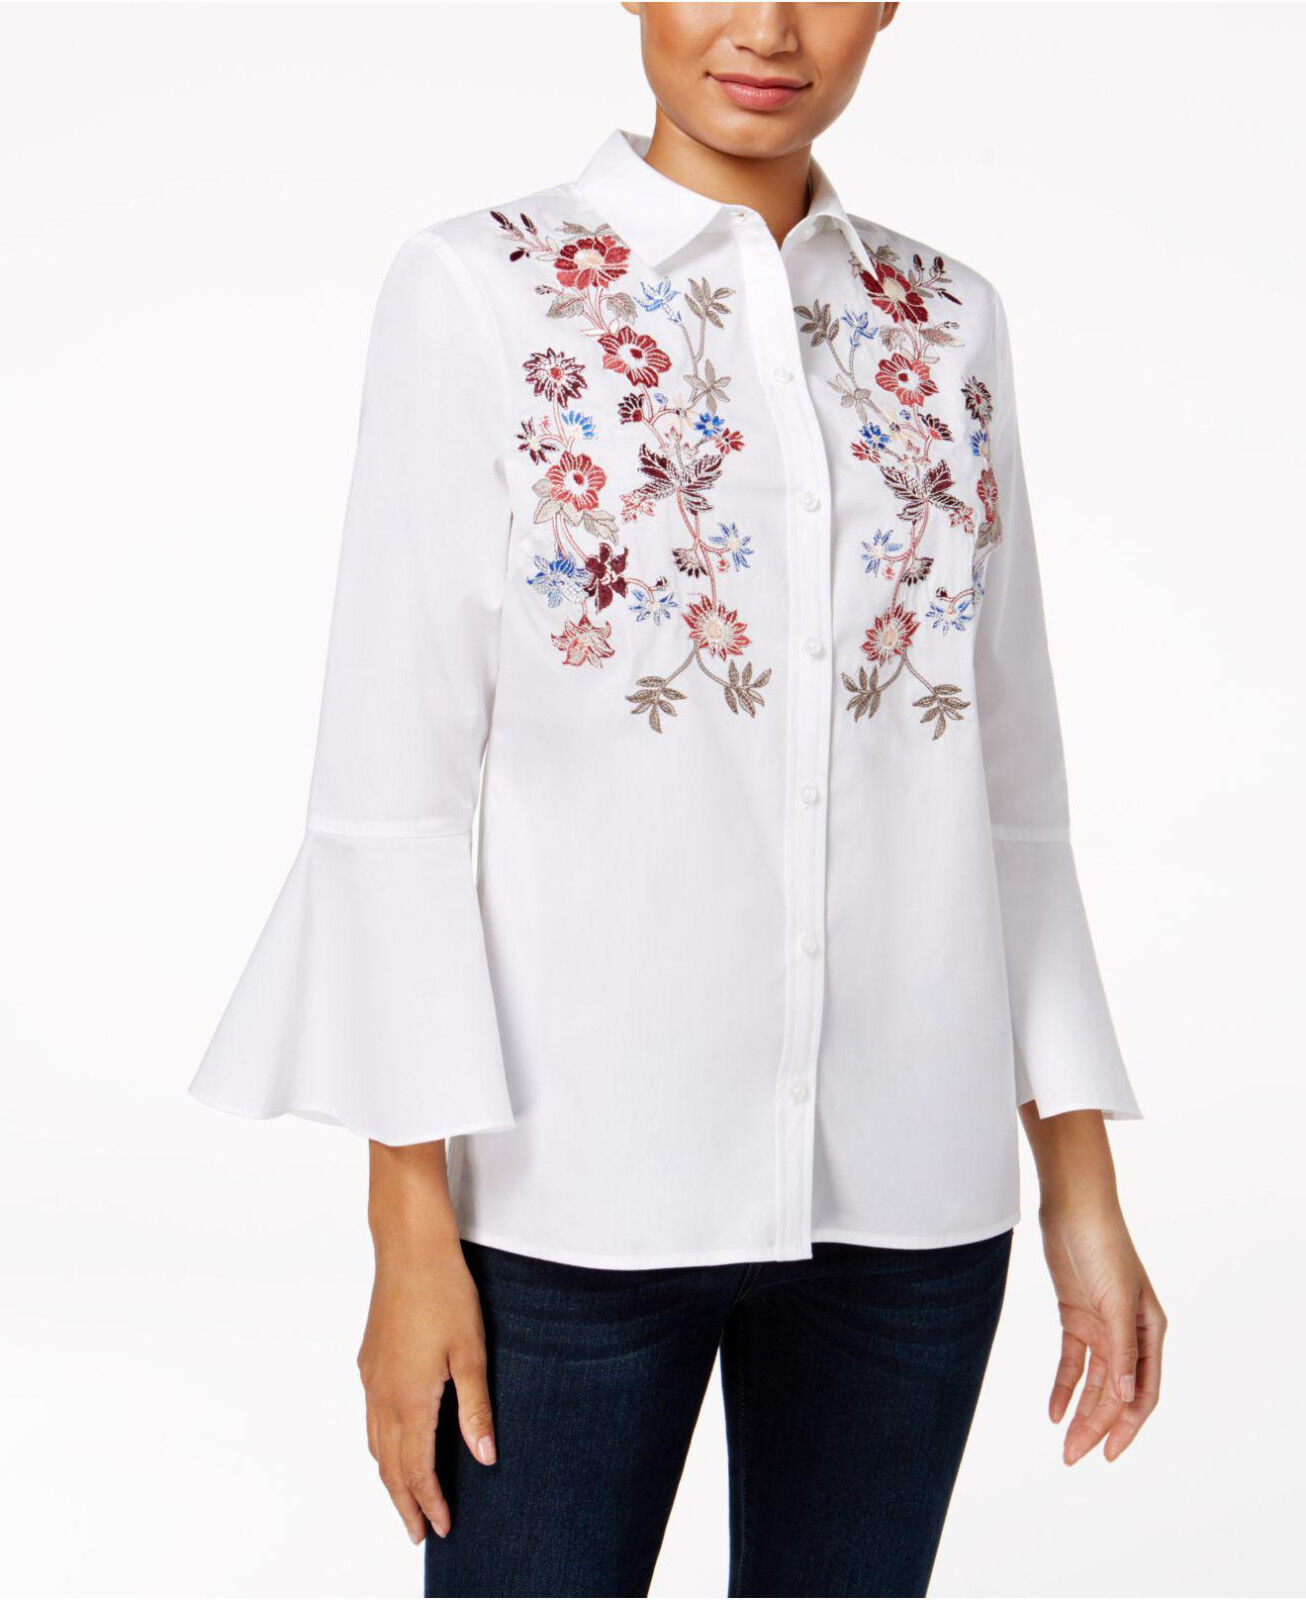 1b4269de897a2 Charter Club Cotton Embroidered Bell-Sleeve in Bright White